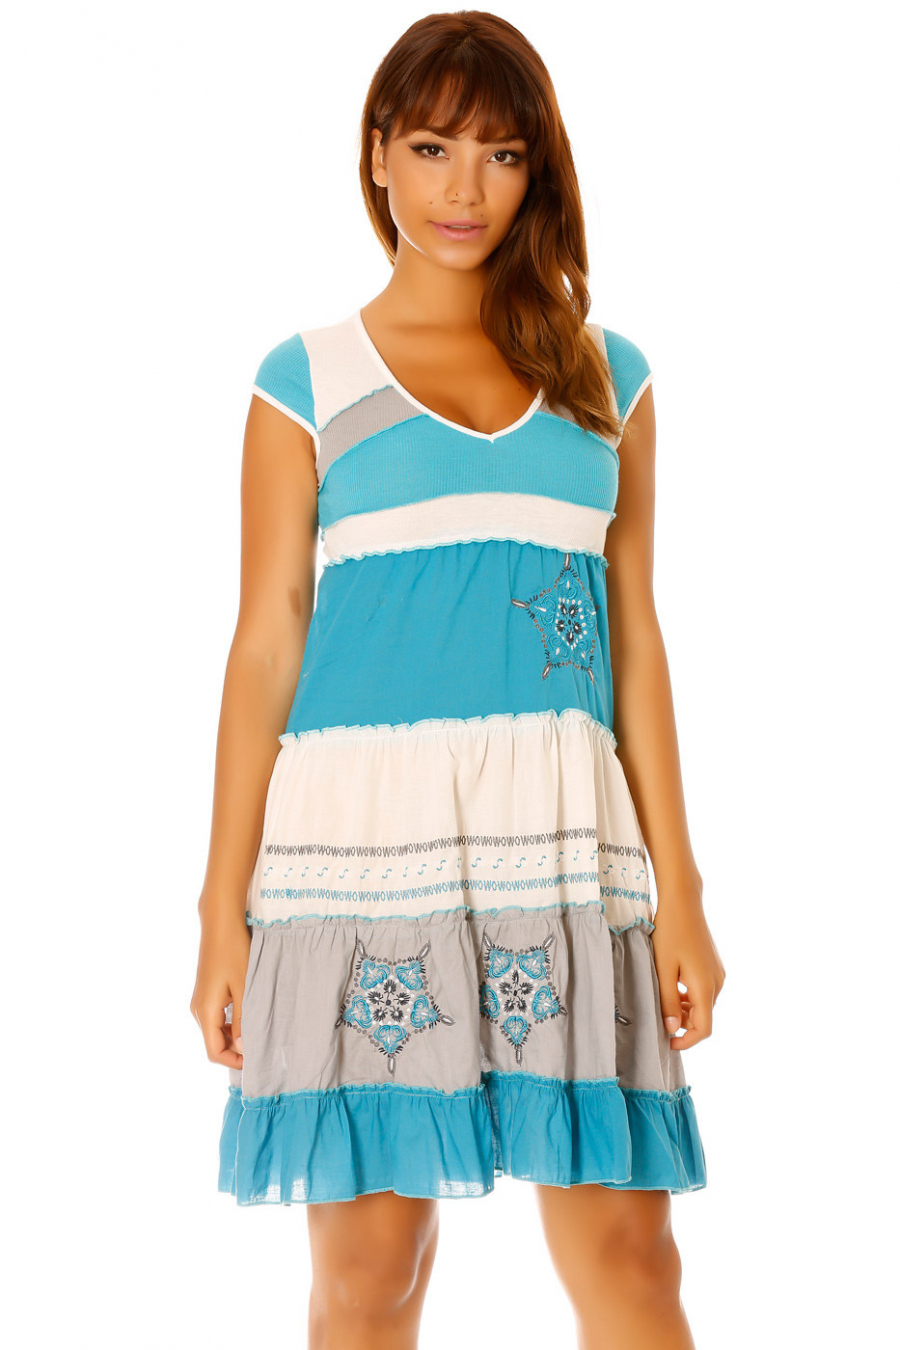 Robe tricolore à tendance turquoise, motif broder. Femme 929